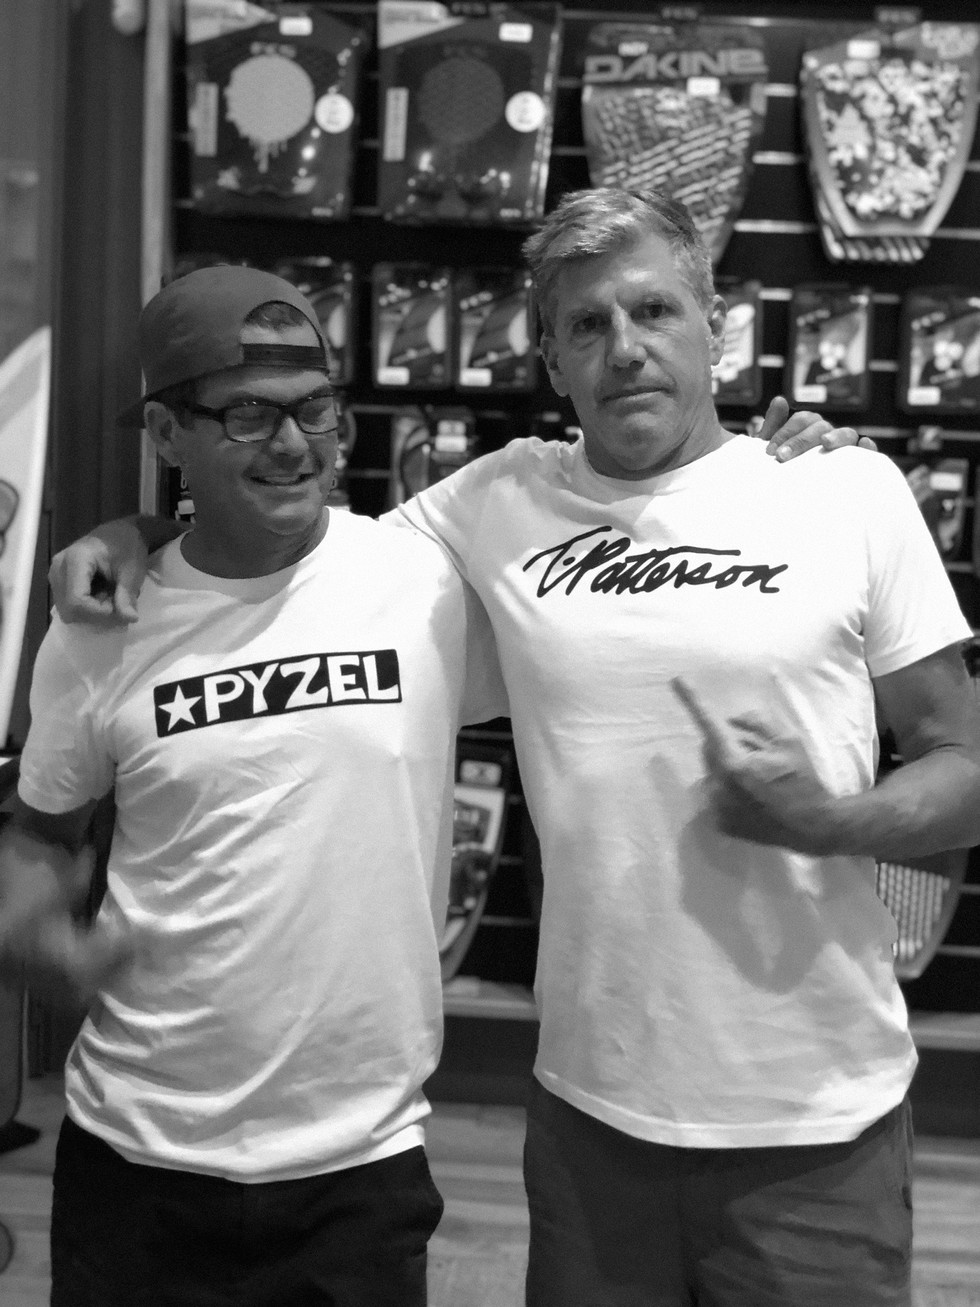 TIMMY PATTERSON & PYZEL @ POLEN SURF SHOP OCT 24